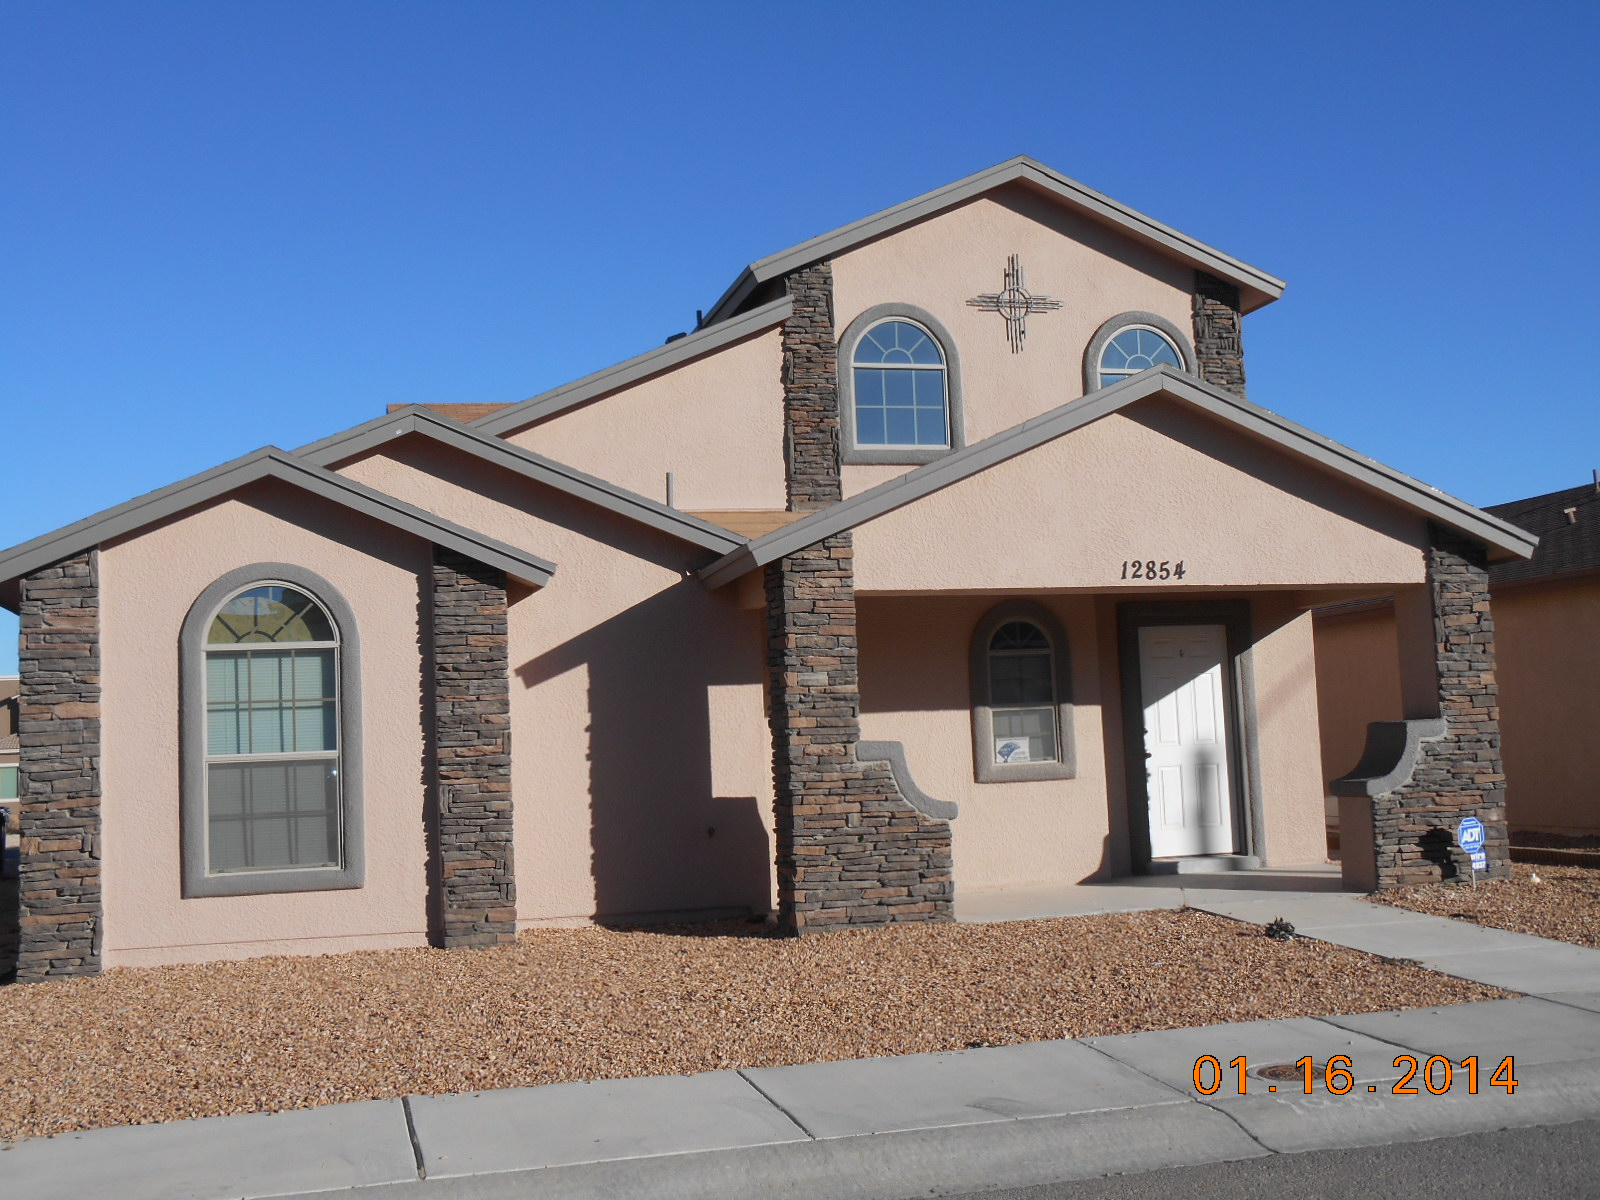 Picture for: 12854 HUECO HILL